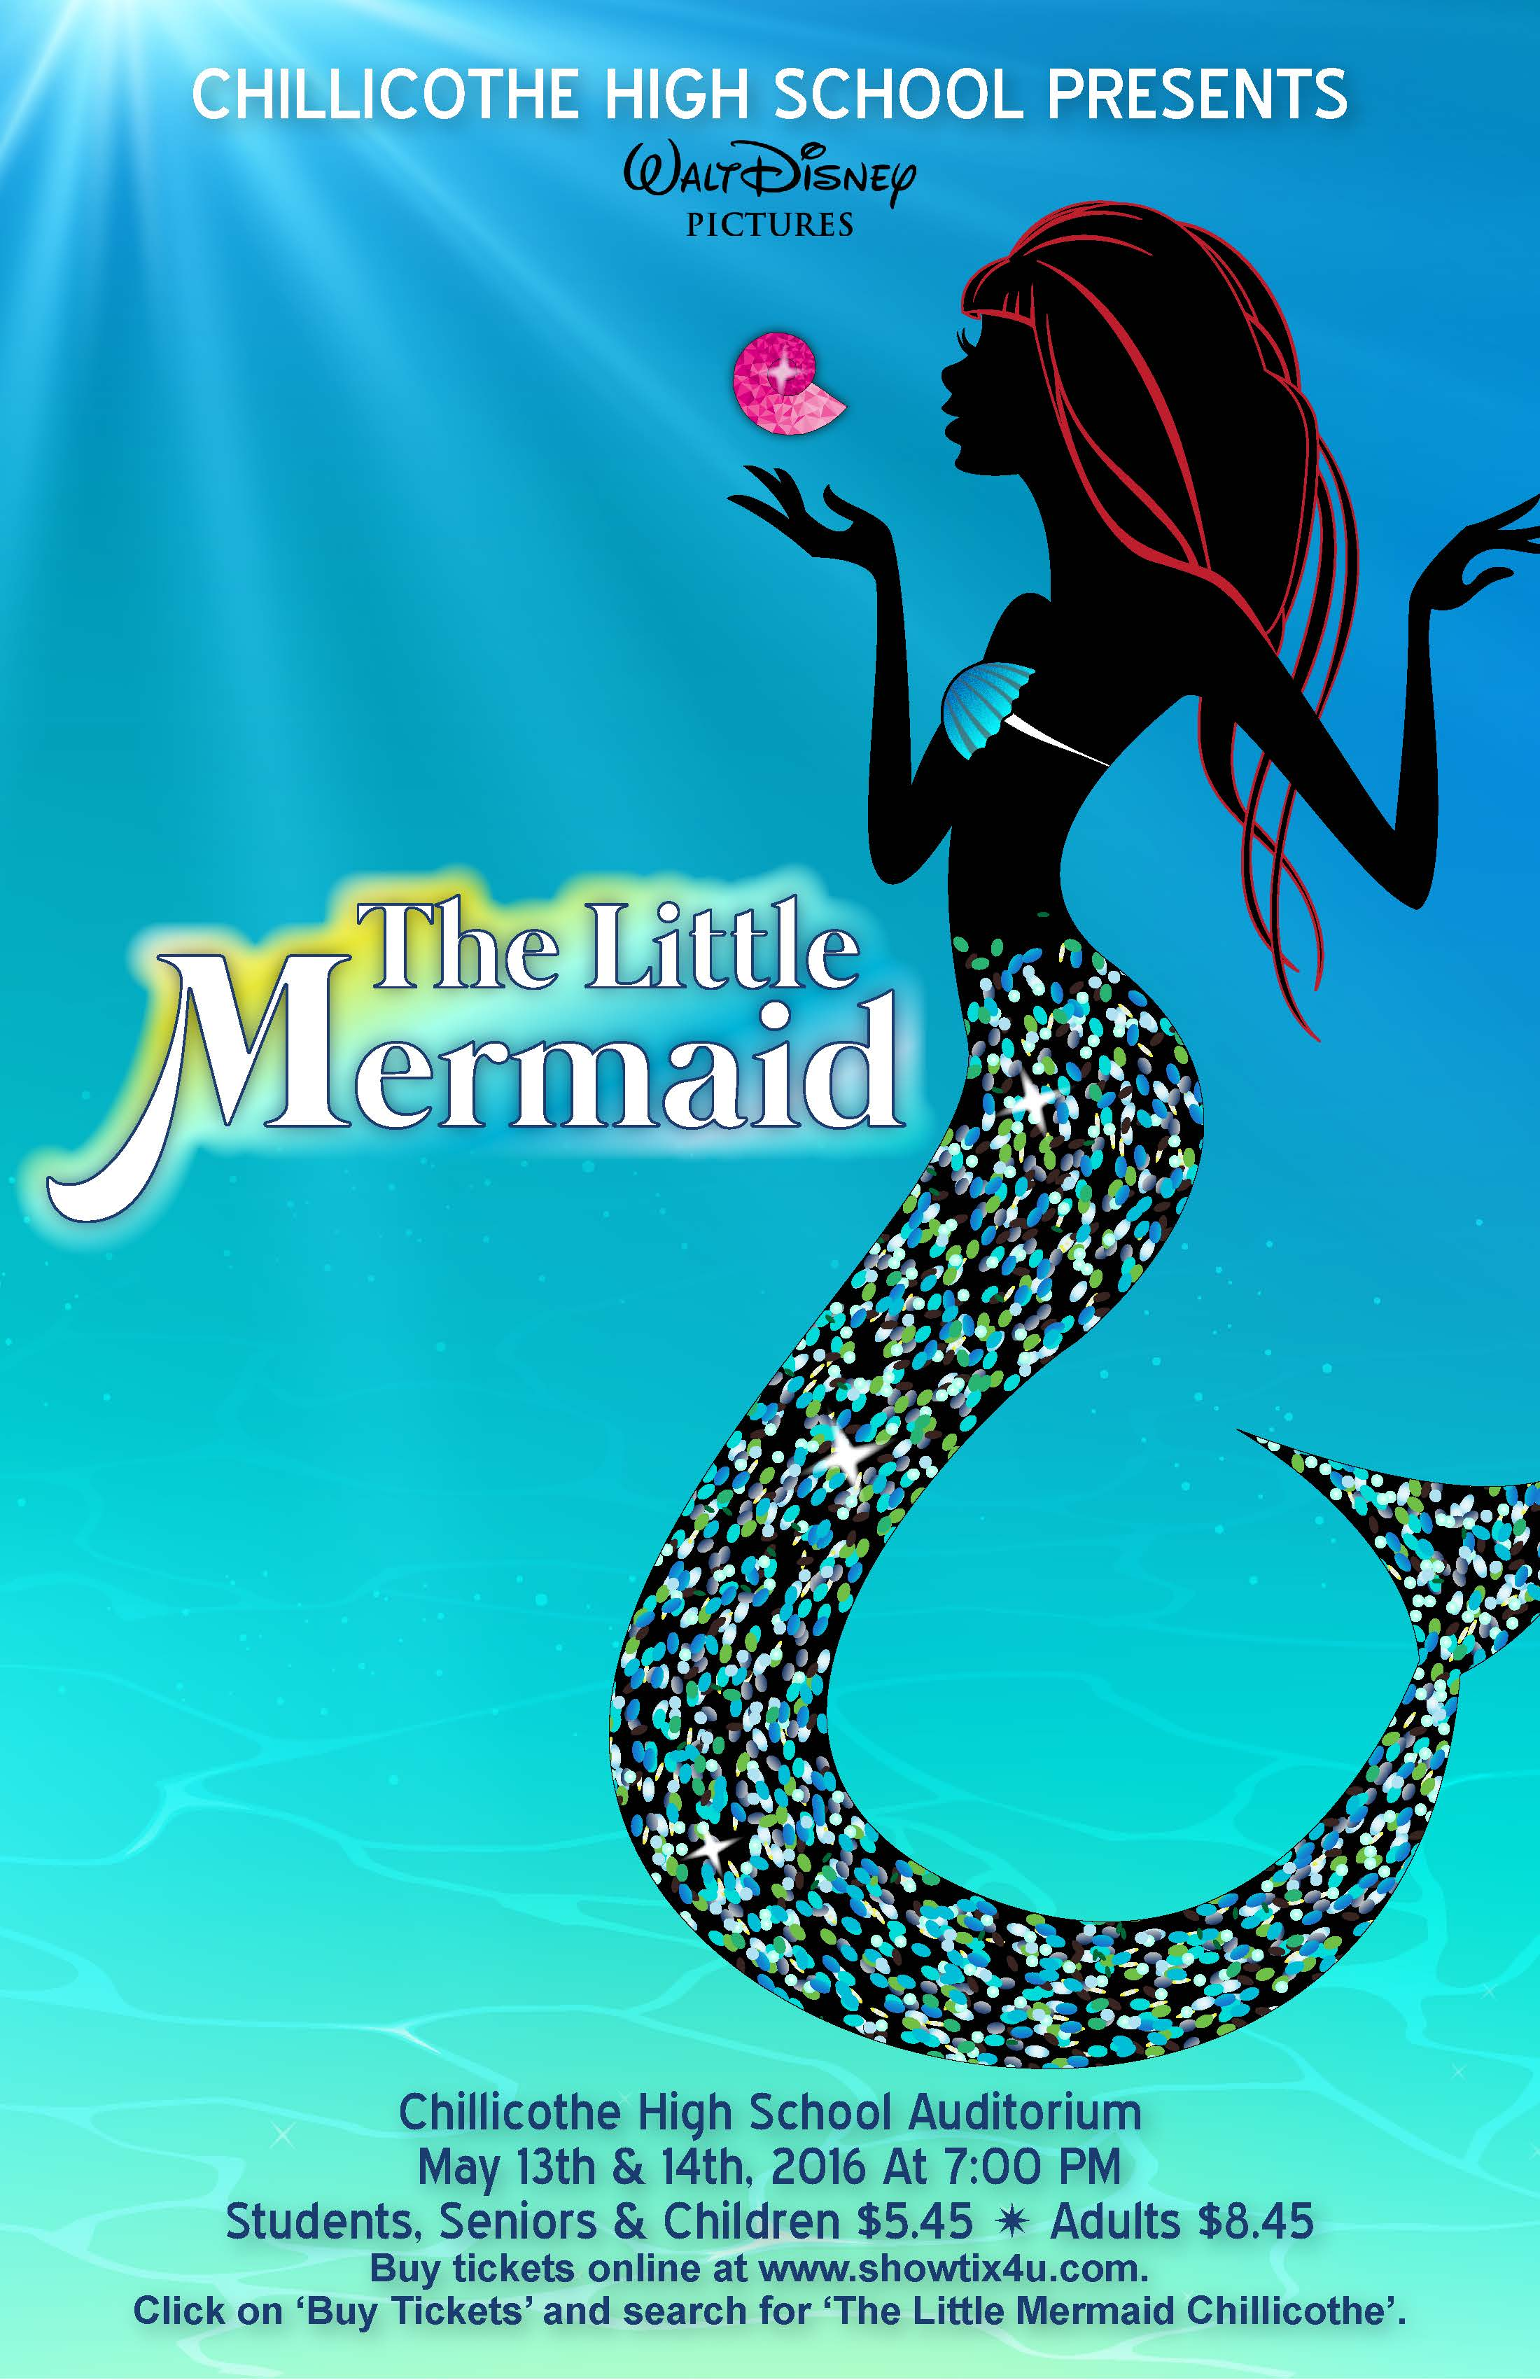 Chillicothe High School Presents: The Little Mermaid